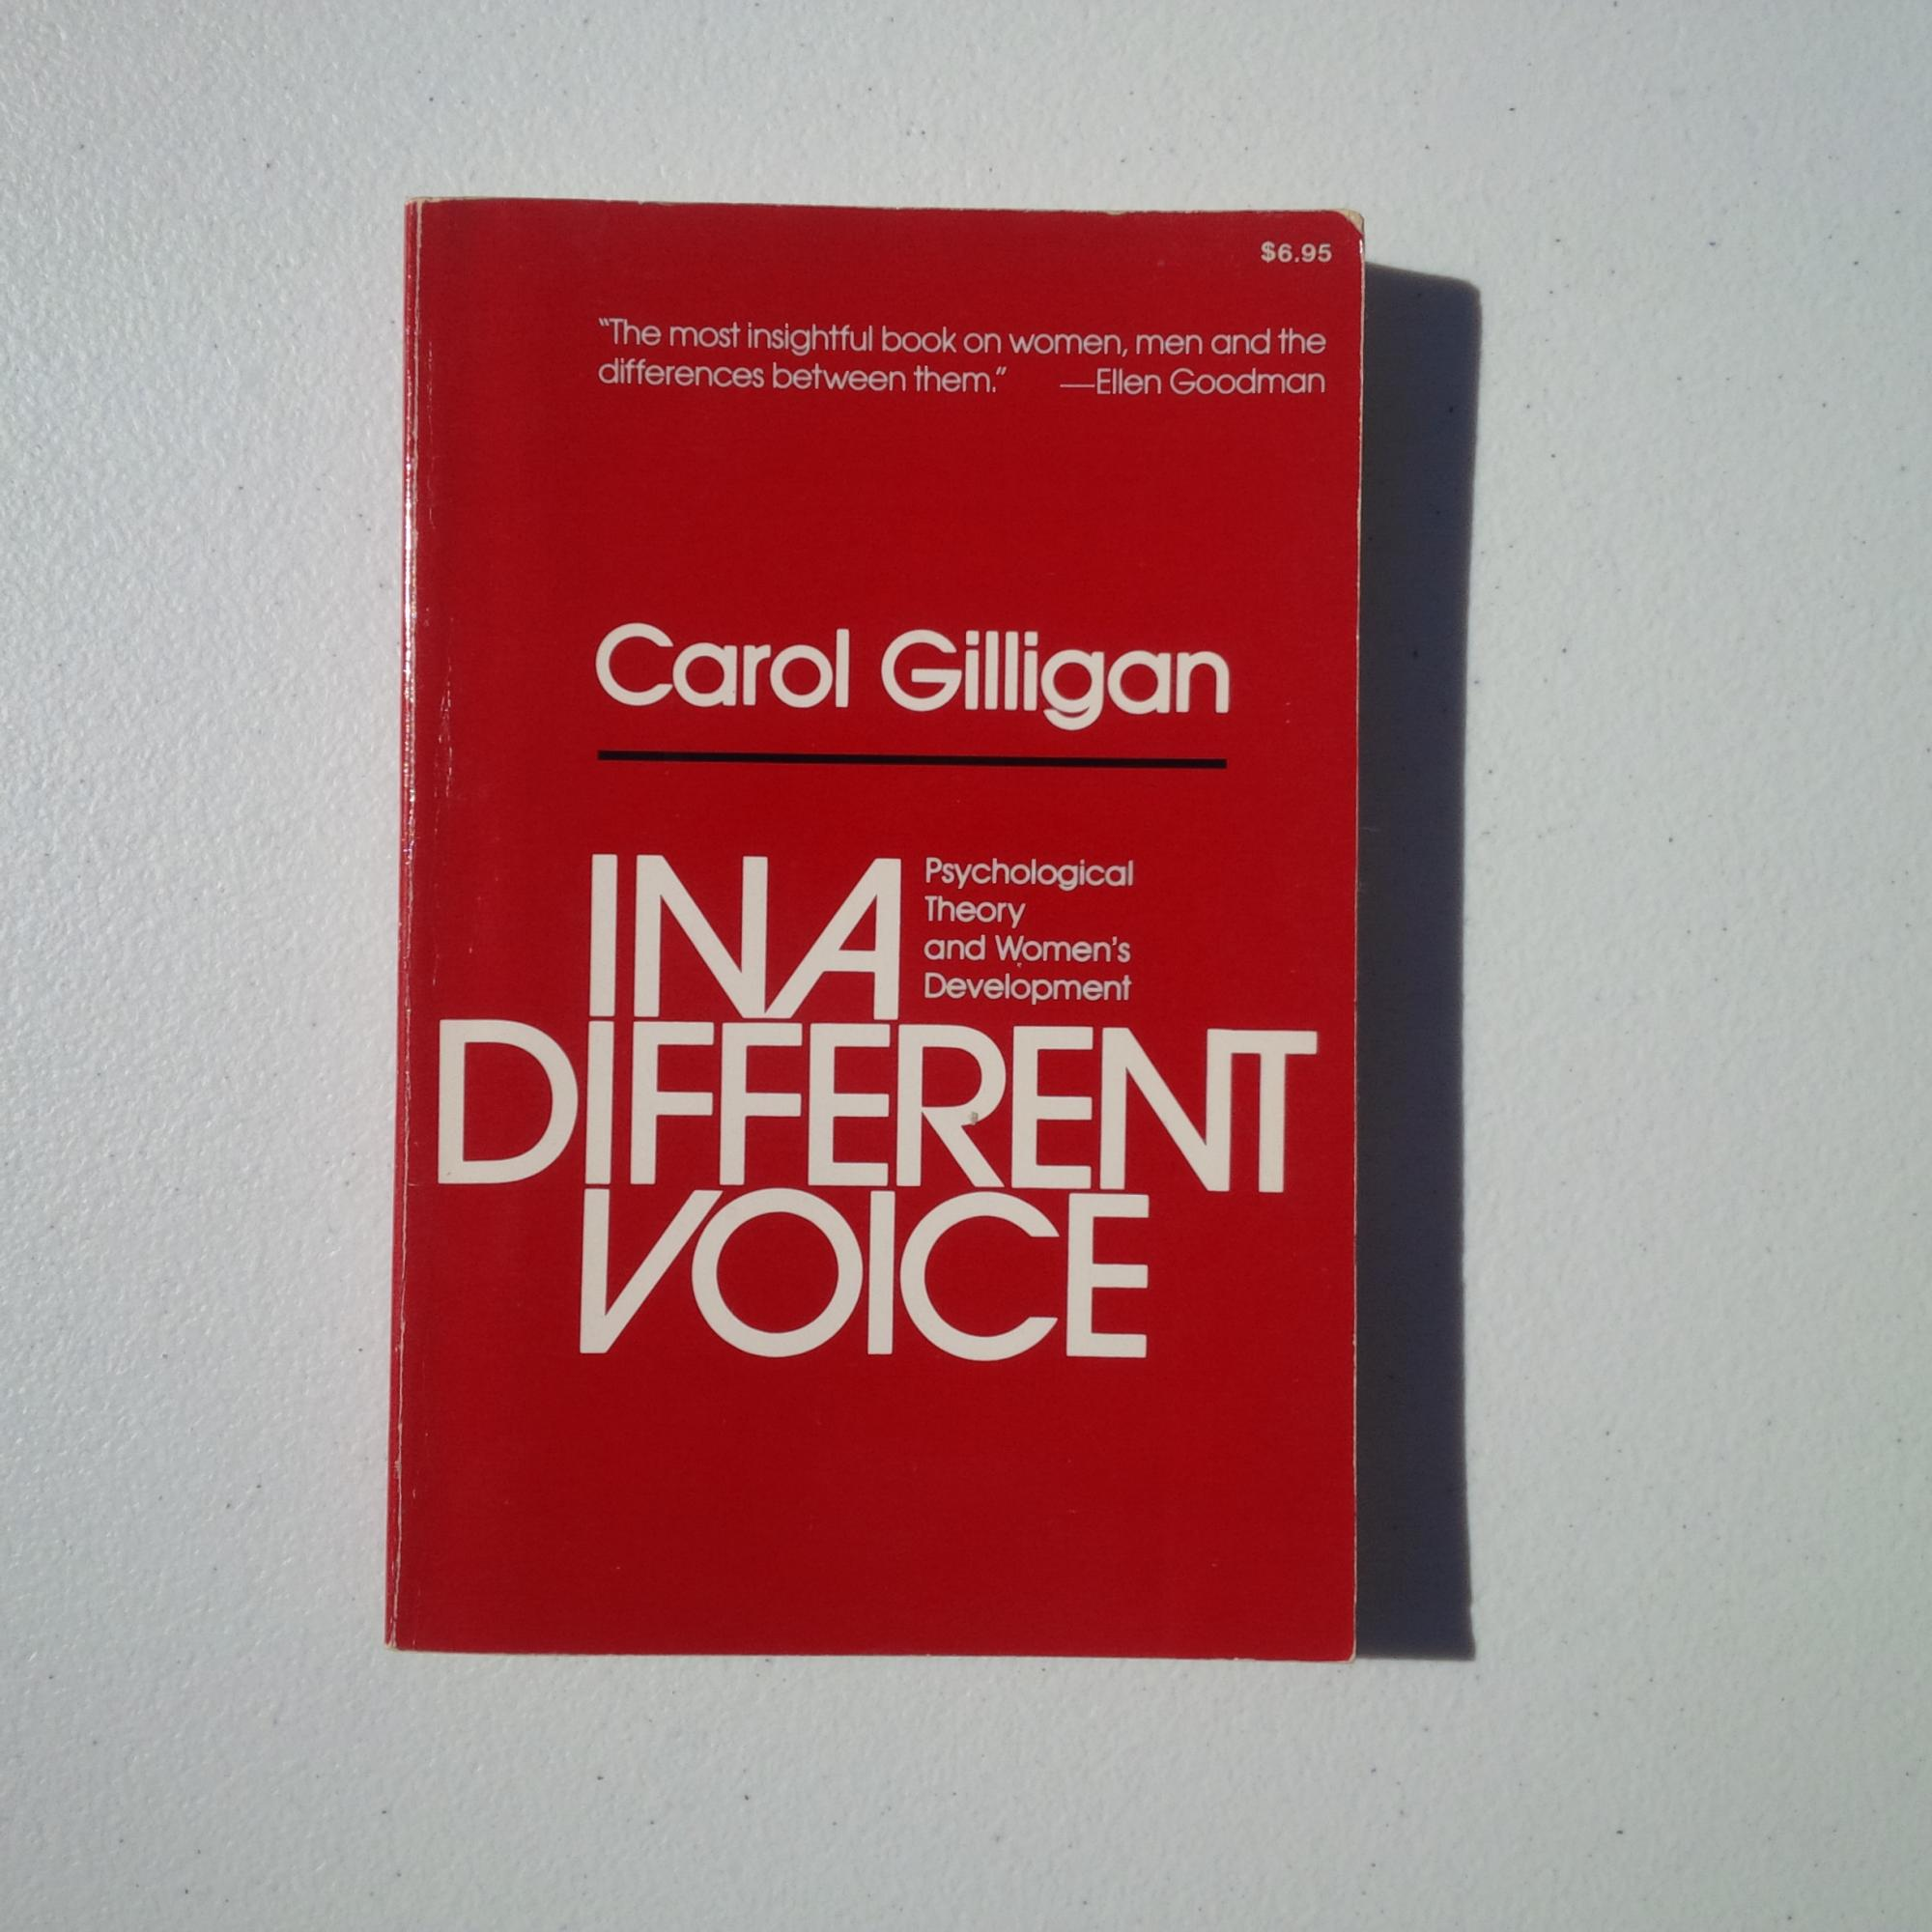 Carol Gilligan - In A Different Voice